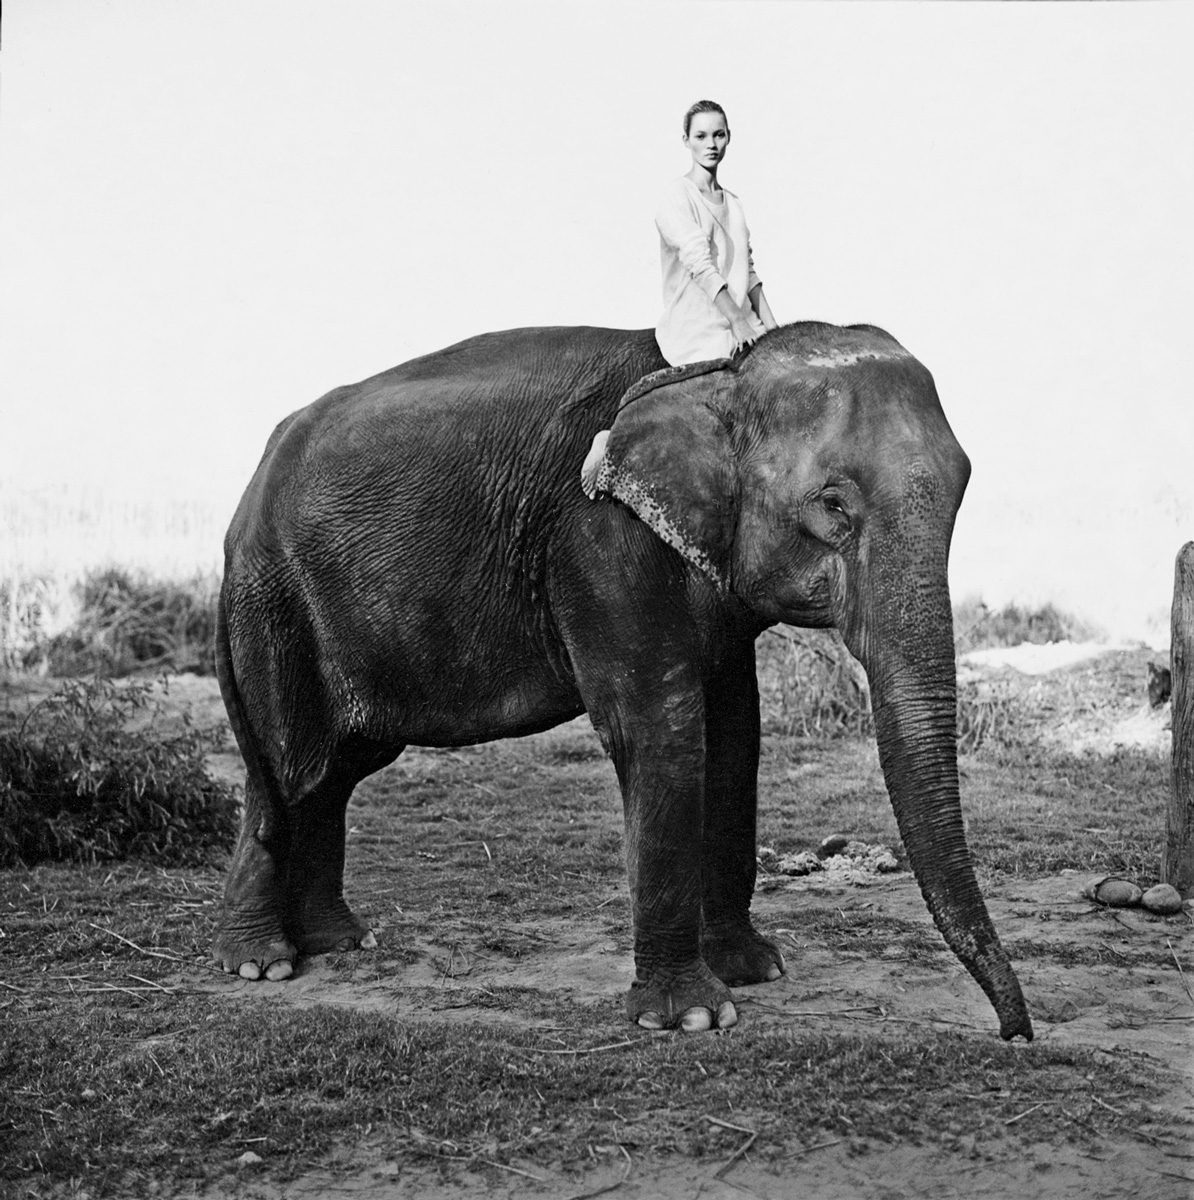 Kate Moss on the Elephant, British